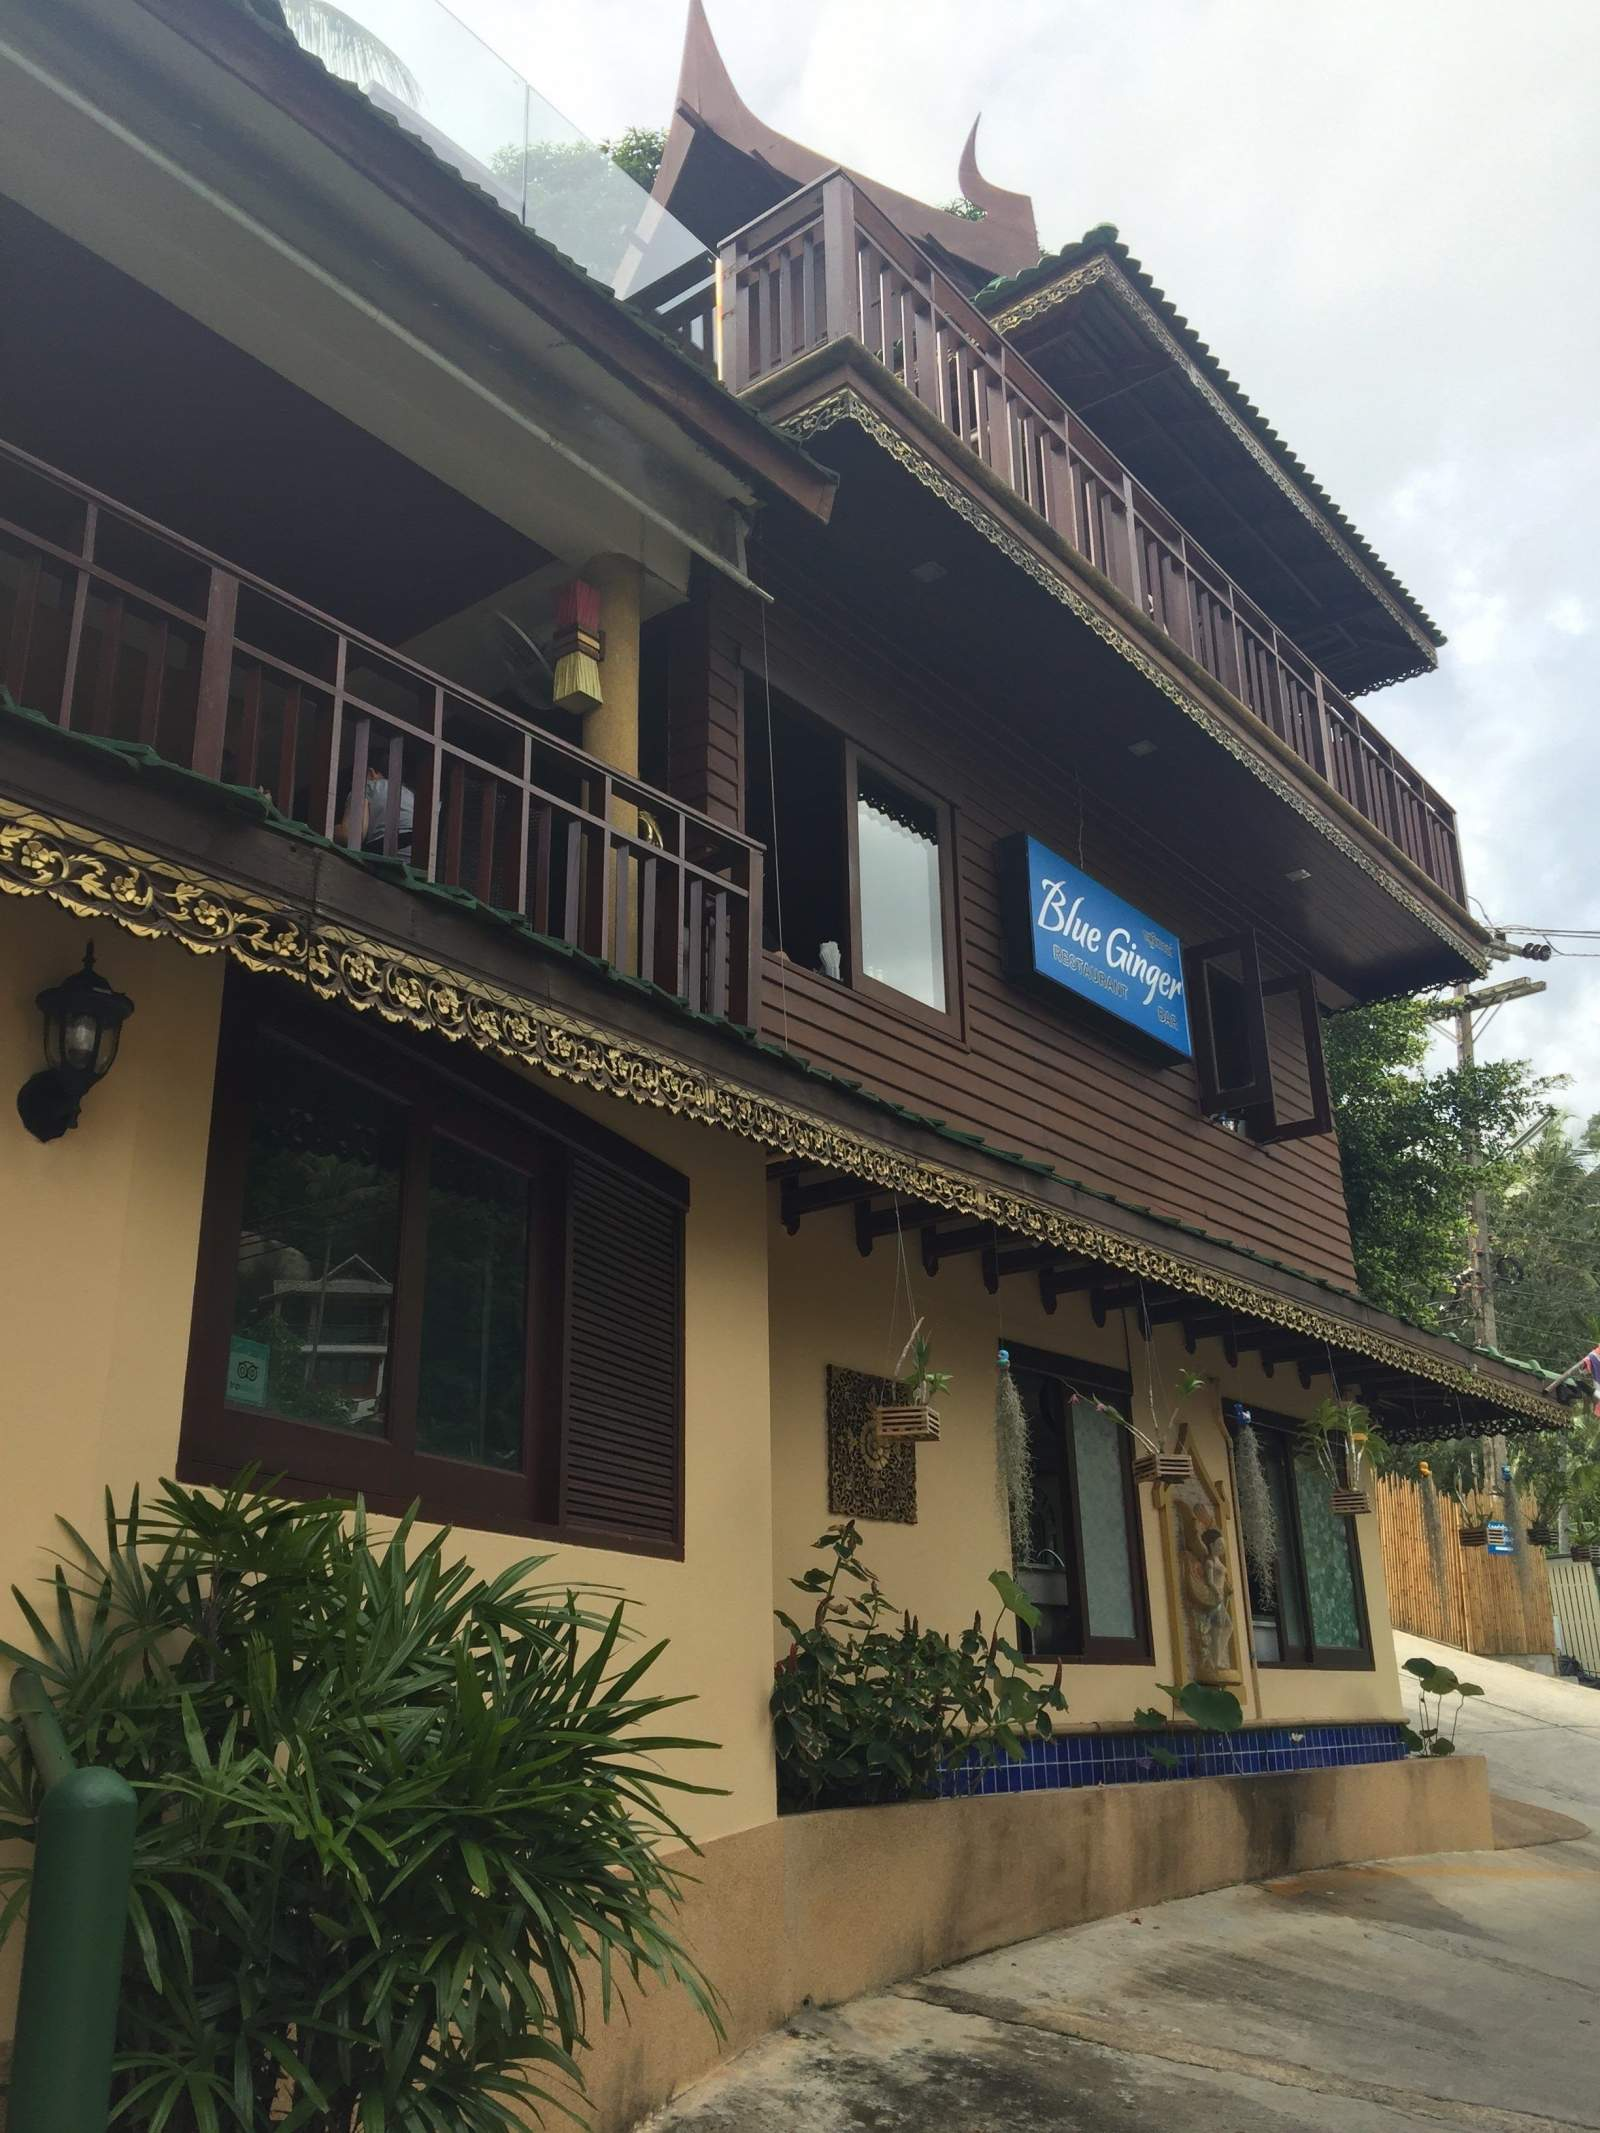 koh samui sandalwood blue ginger restaurant